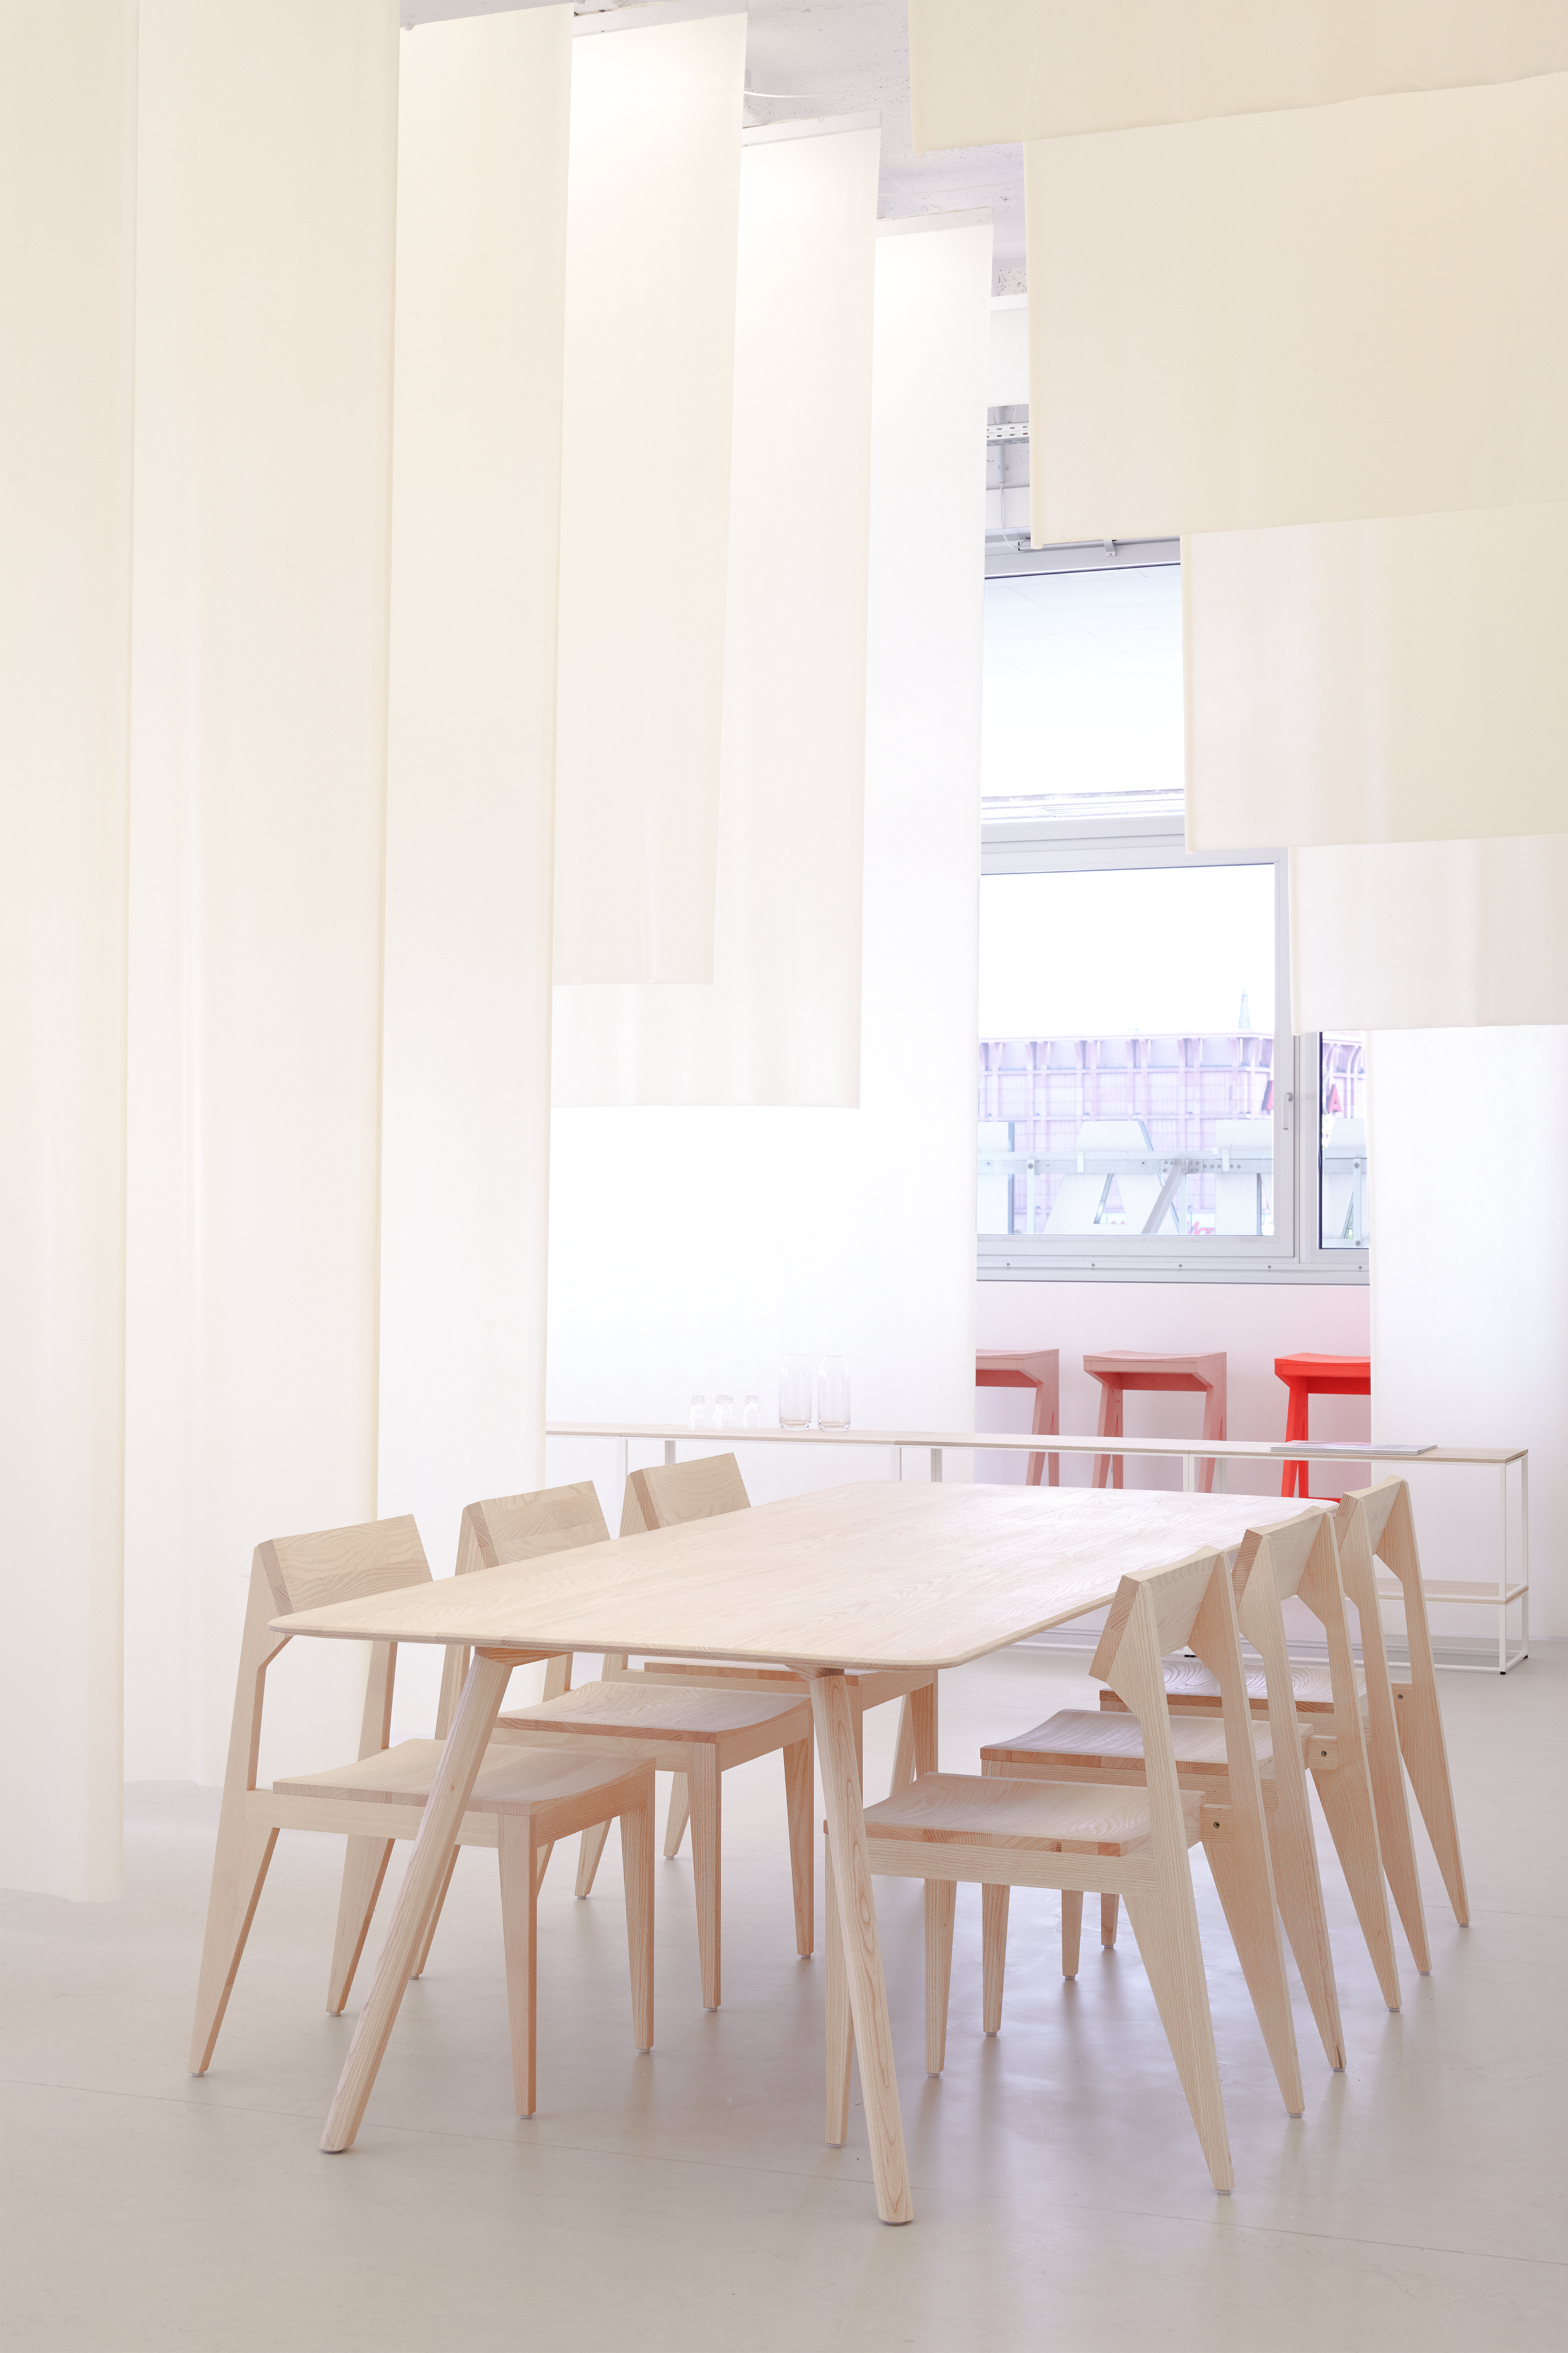 objekte-unserer-tage-3307-Showroom-15-meyer-table-schulz-chair-med-res.jpg.png